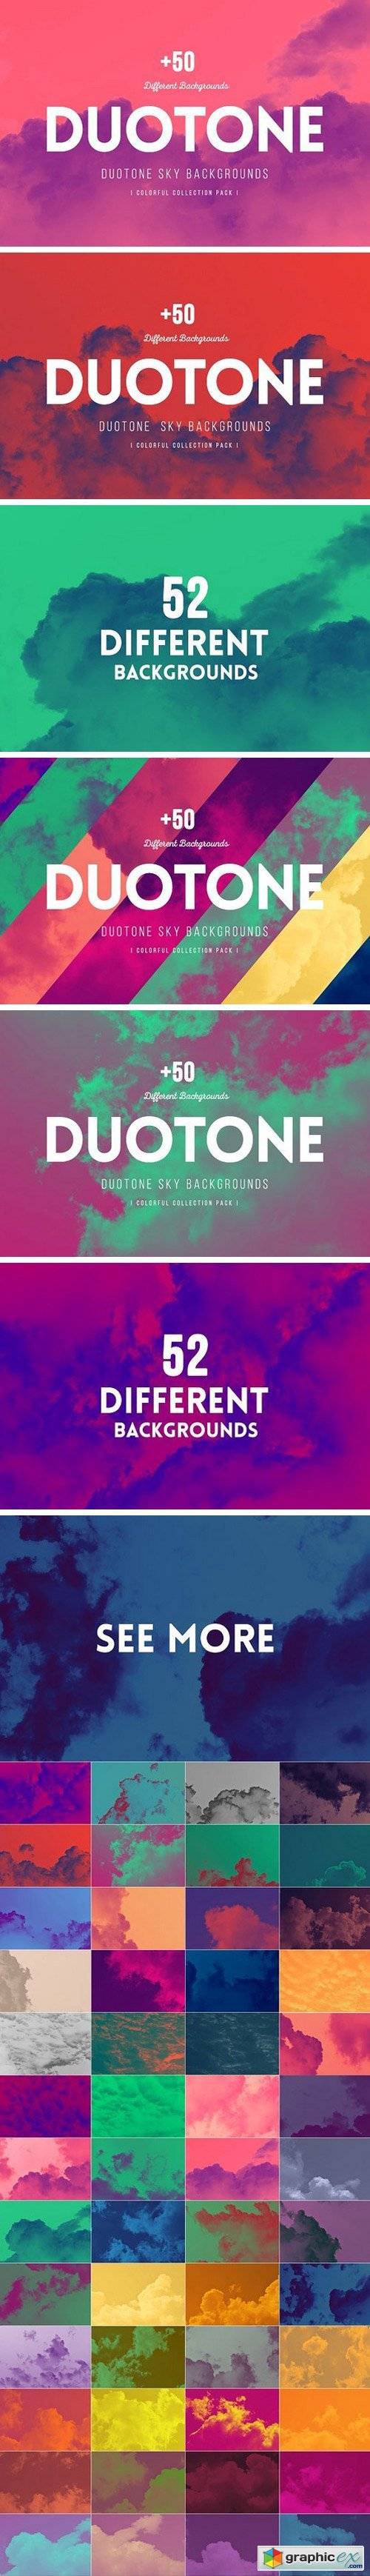 +50 Duotone SKY Backgrounds